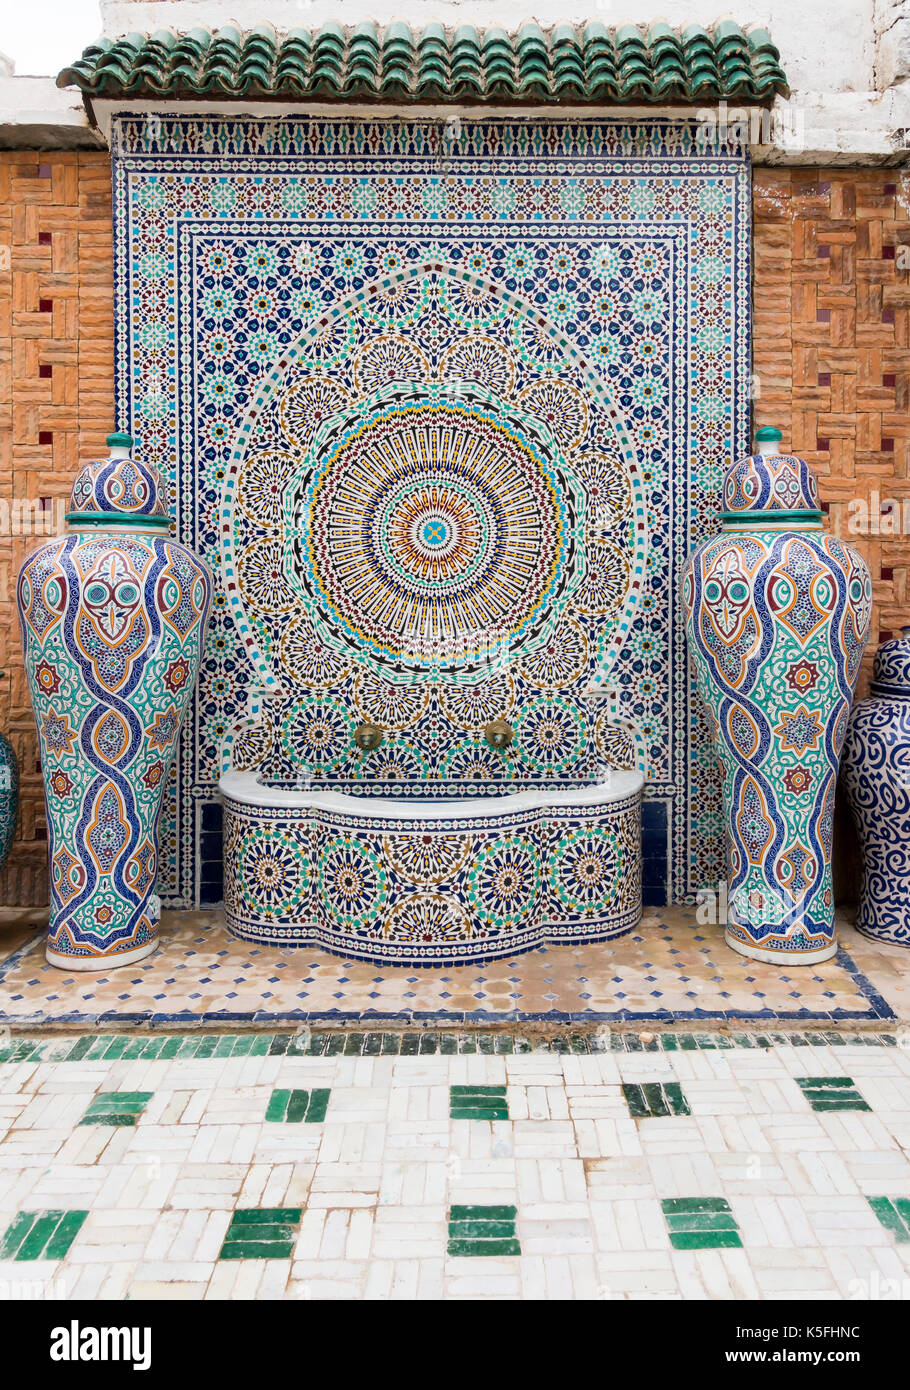 Moroccan vase stock photos moroccan vase stock images alamy fez morocco may 07 2017 typical handmade moroccan mosaic fountain and vases reviewsmspy